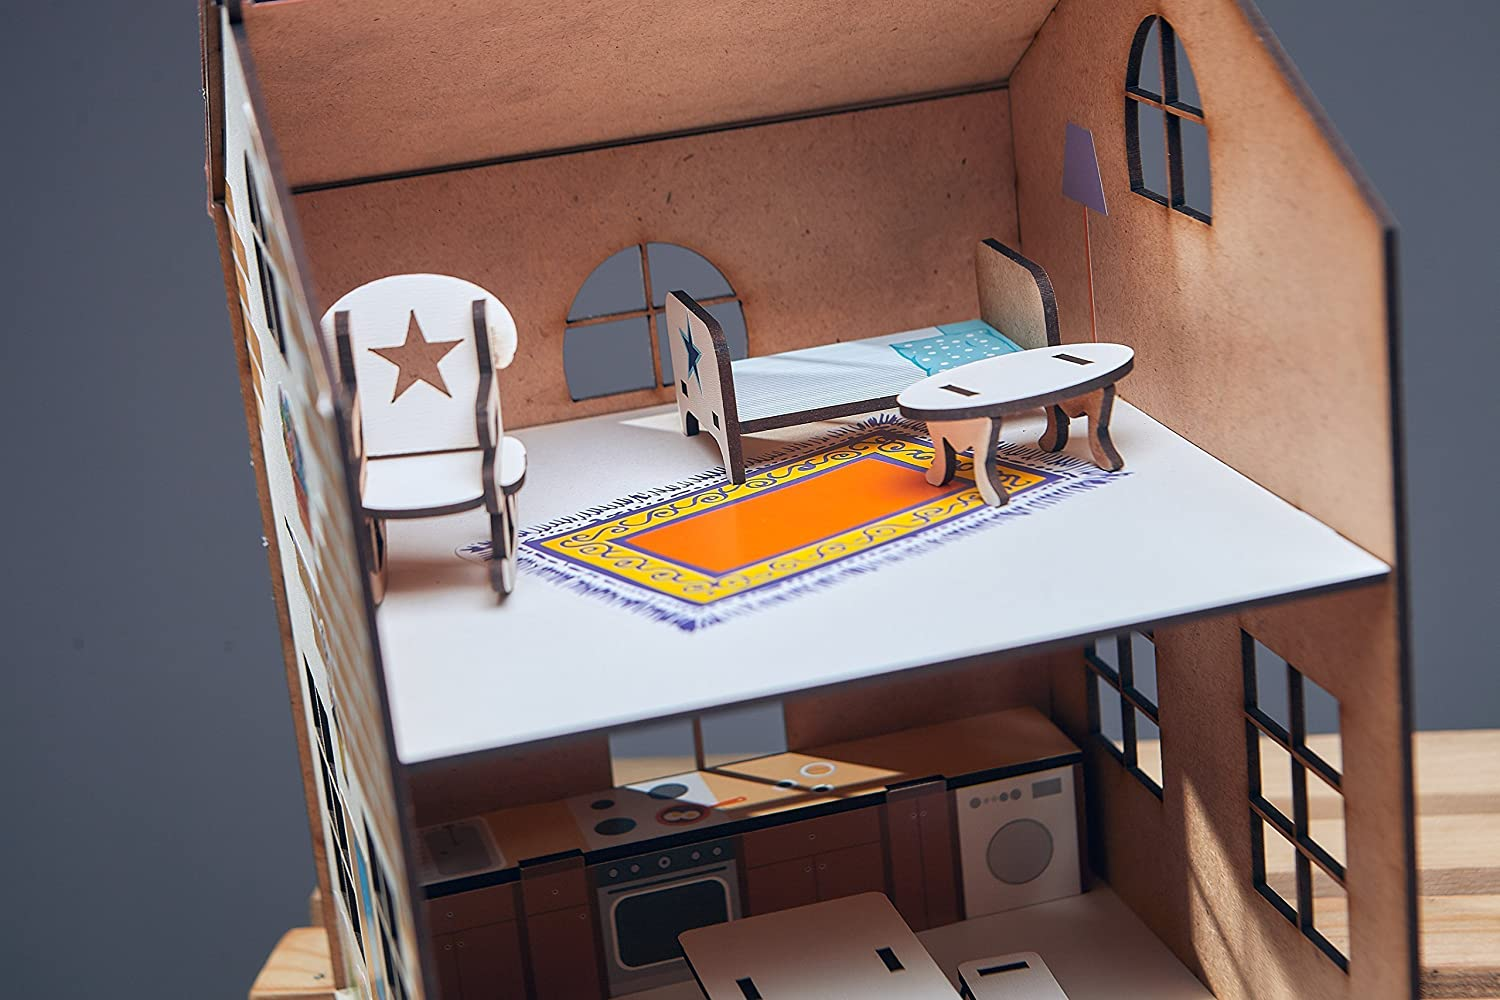 wooden toy 3d puzzles eco-friendly Dollhouse with furniture